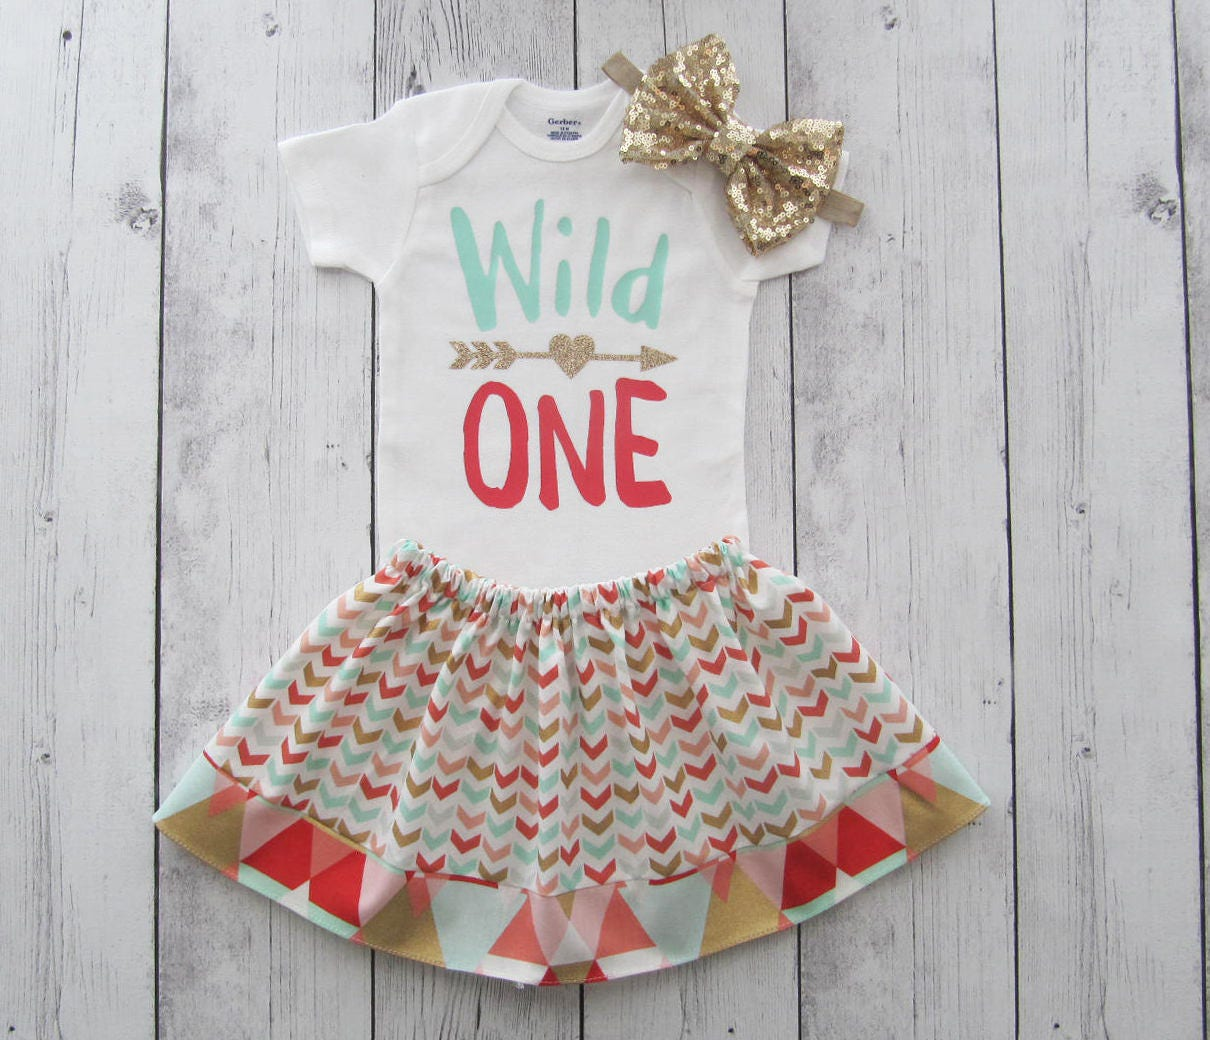 Wild One Birthday Outfit For Girl Peach Mint Gold Girl